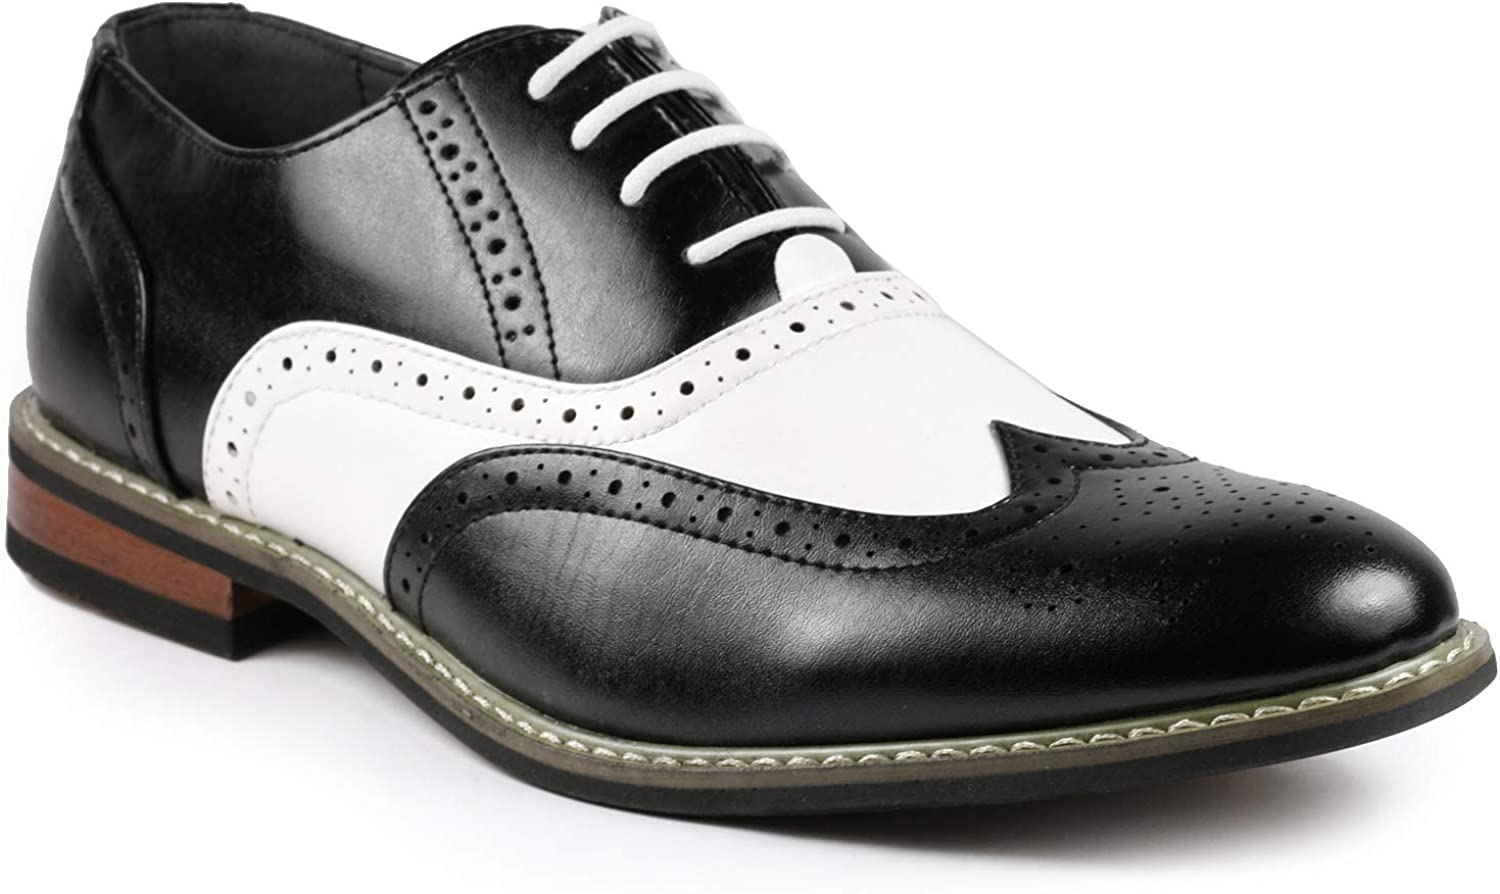 Metrocharm ALEX-08 Men's Two Tone Spectator Wing-tip Perforated Lace Up Oxford Dress Shoe